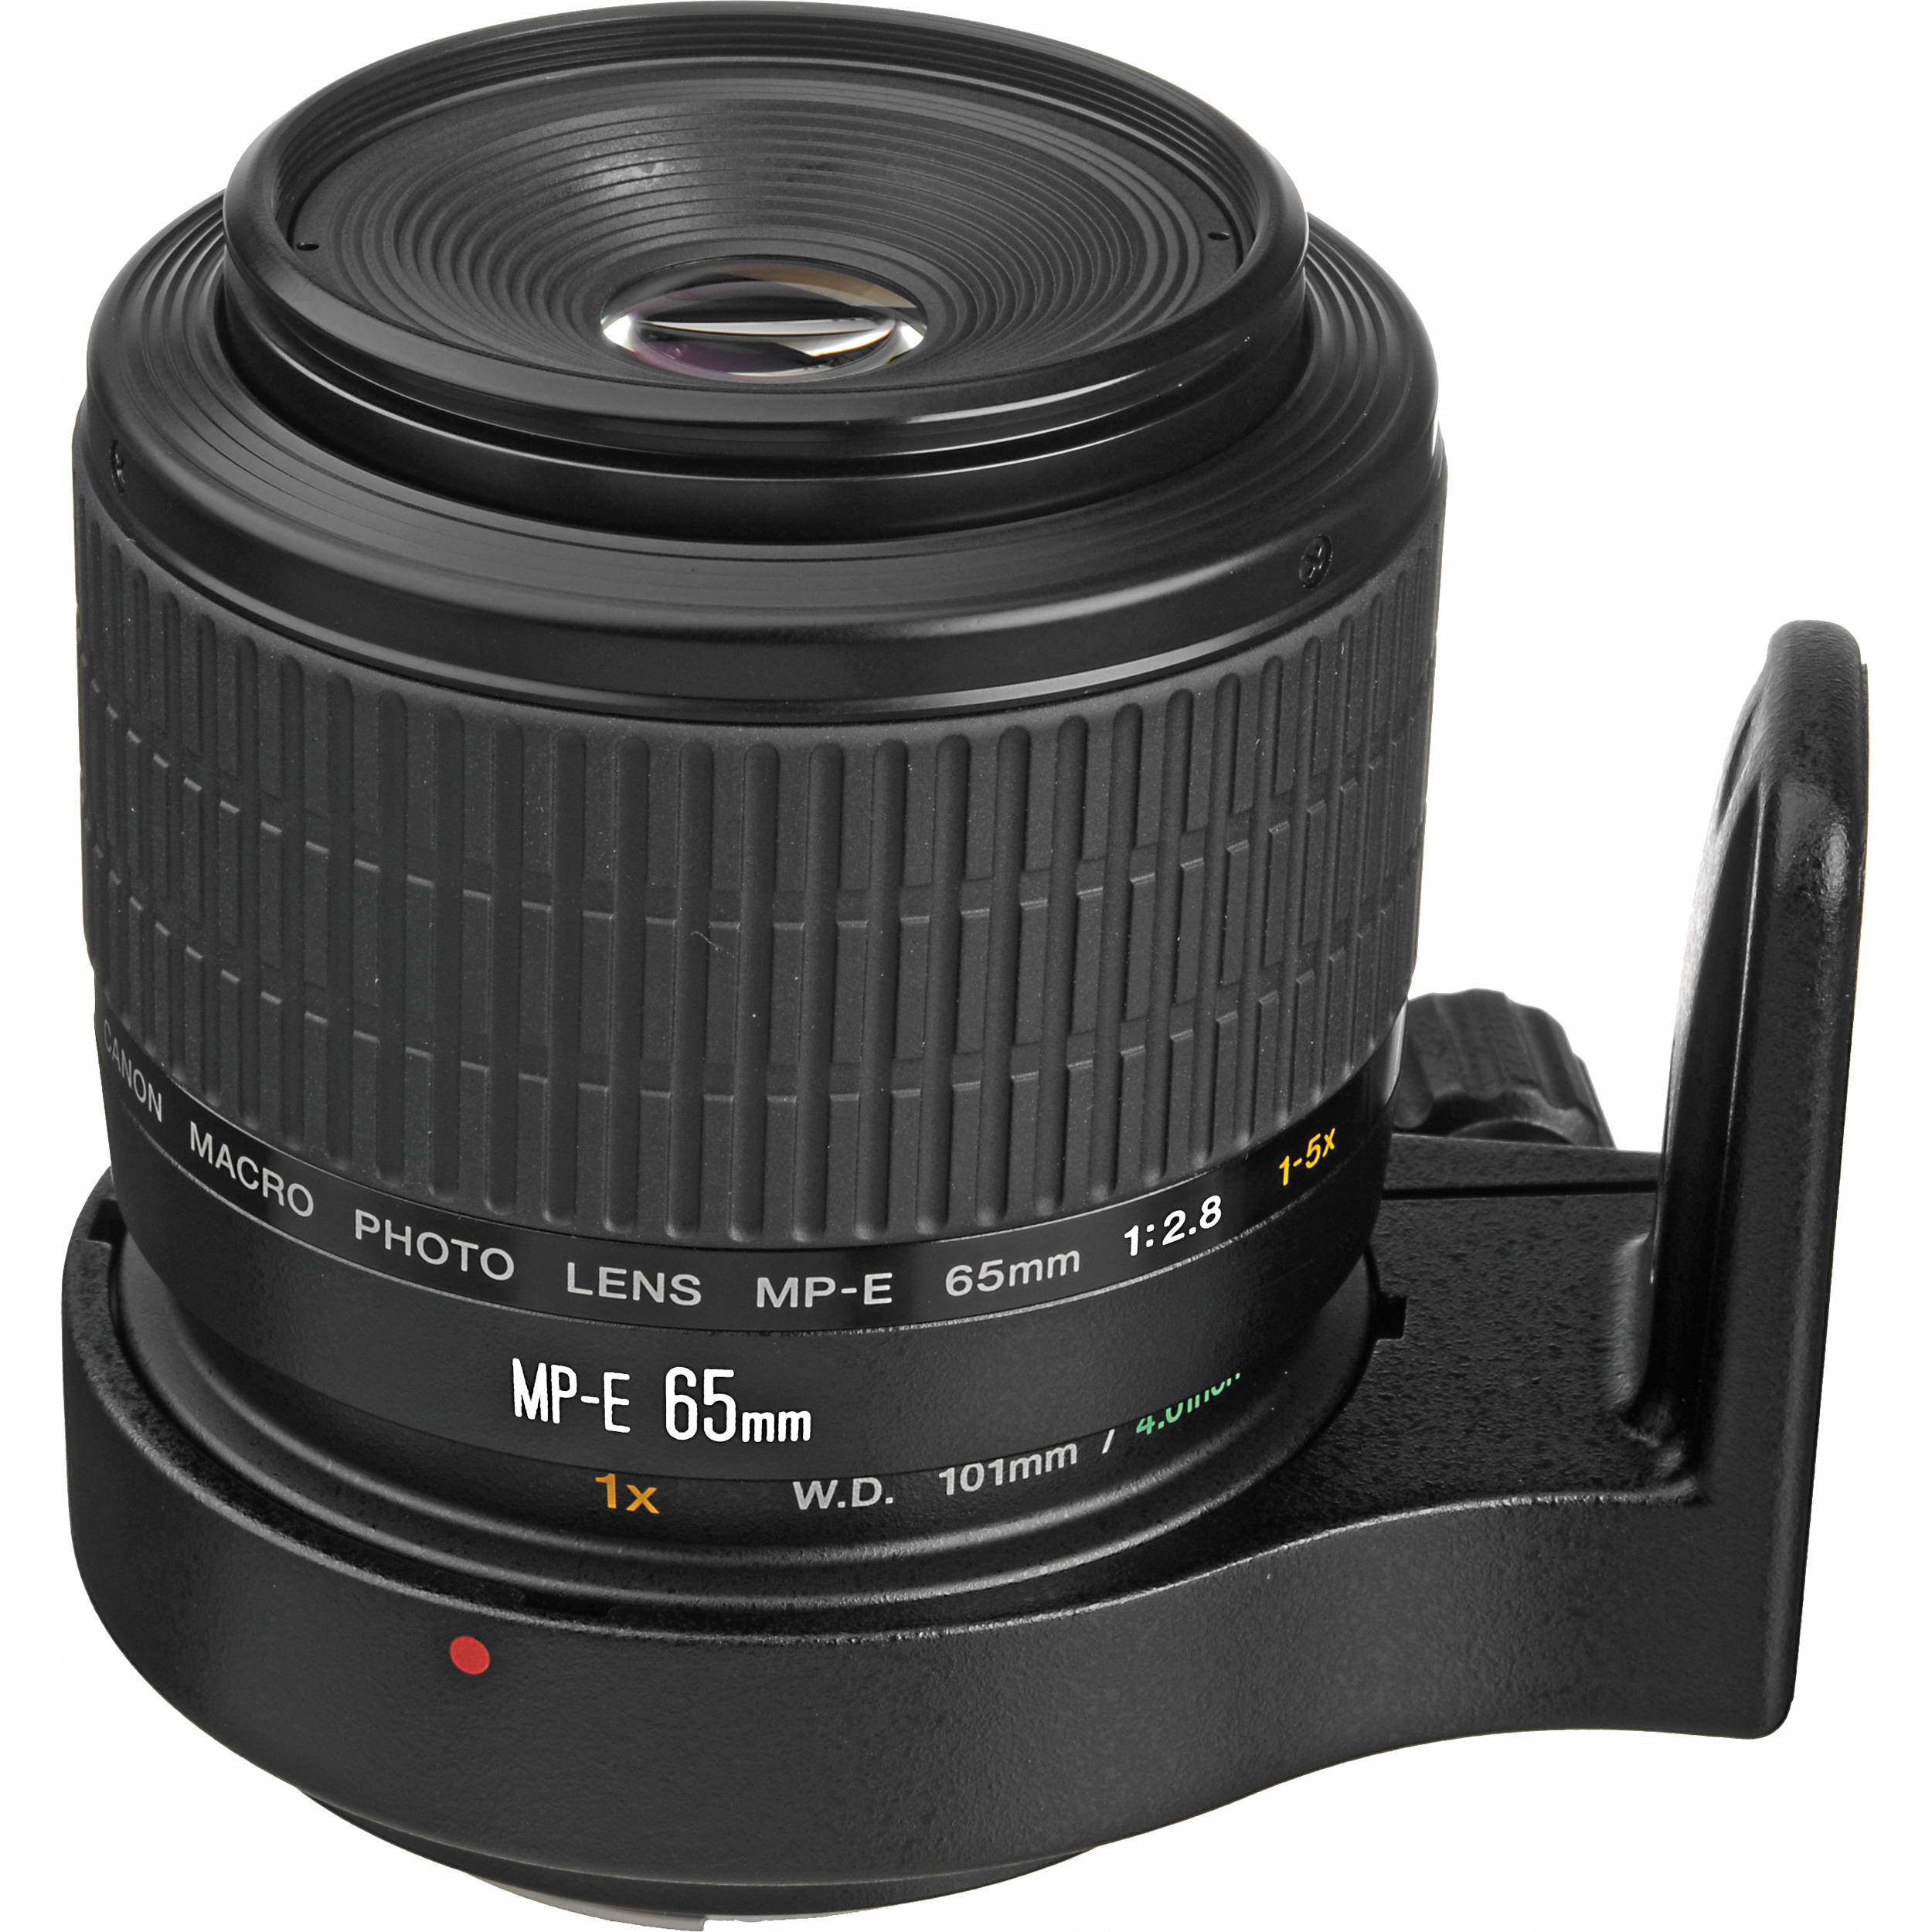 Image result for canon mp-e 65mm 1-5x macro lens